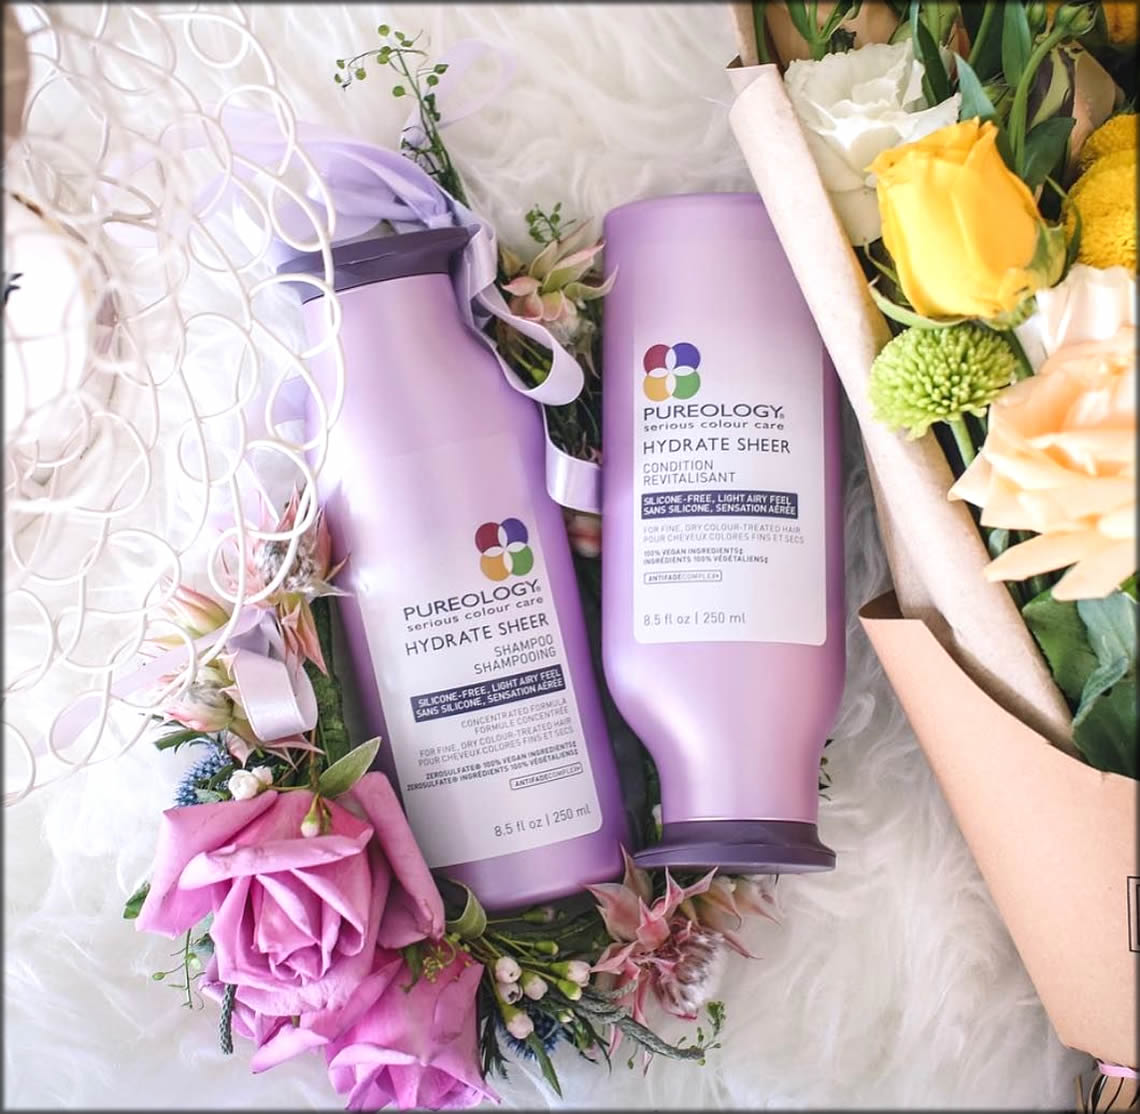 Hydrate Sheer Conditioners For Dry Hairs